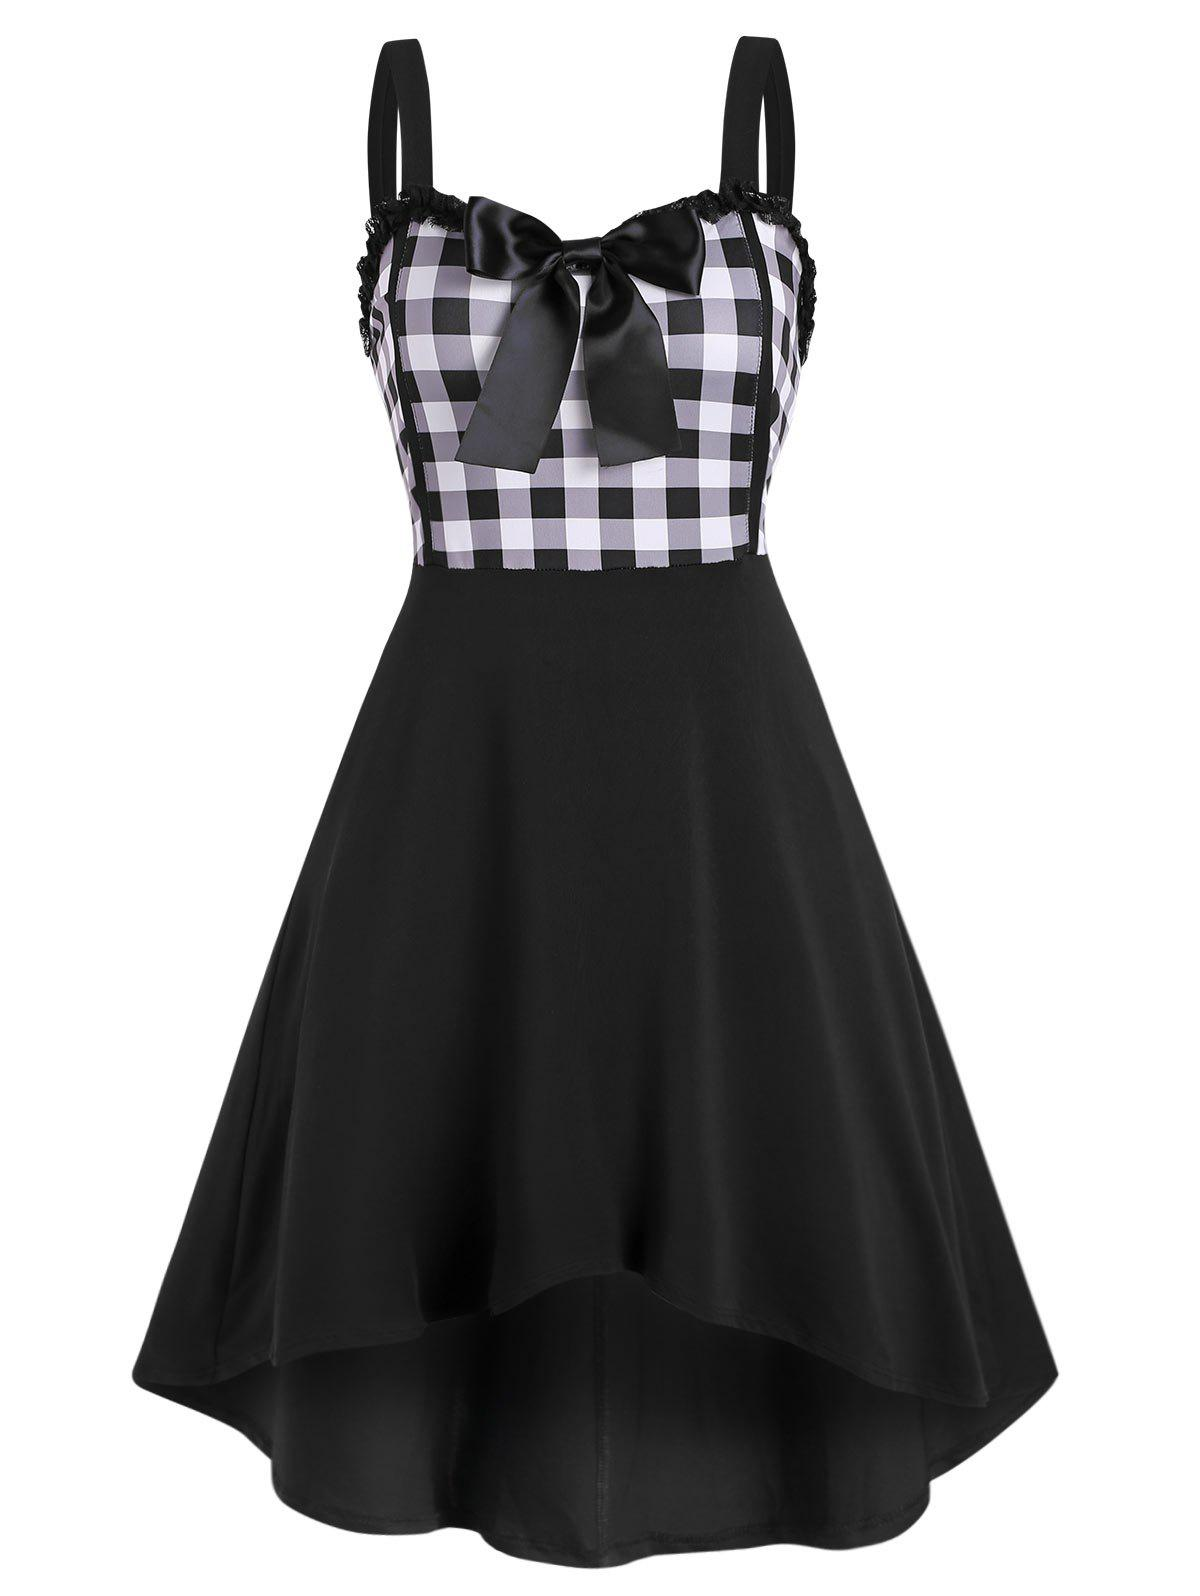 Latest Lace Trim Bowknot Gingham Sleeveless High Low Dress